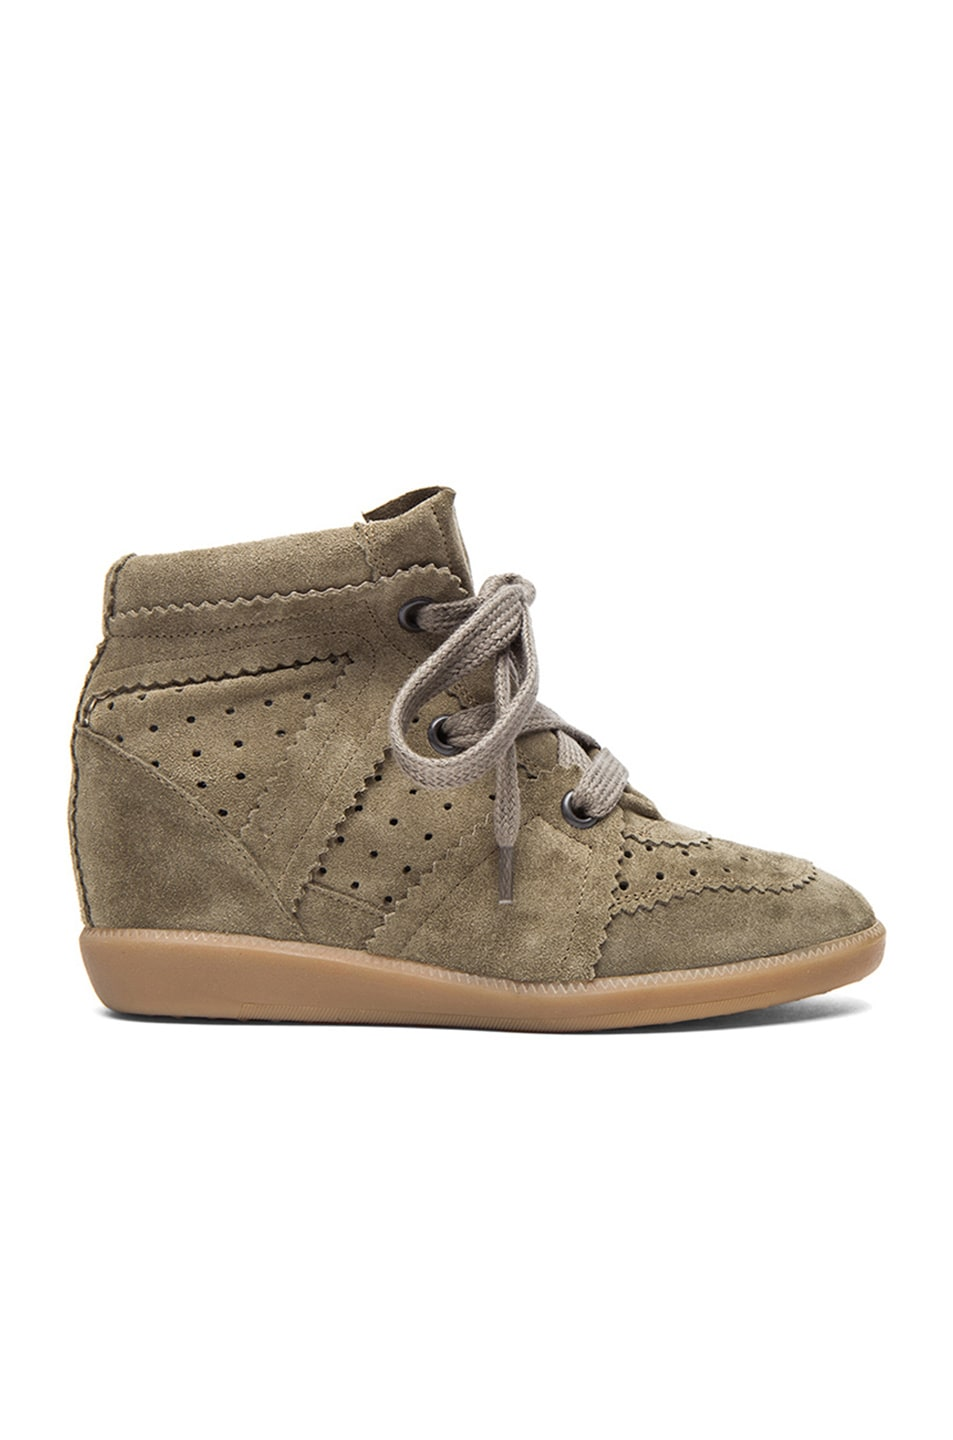 Image 1 of Isabel Marant Bobby Calfskin Velvet Leather Sneakers in Taupe